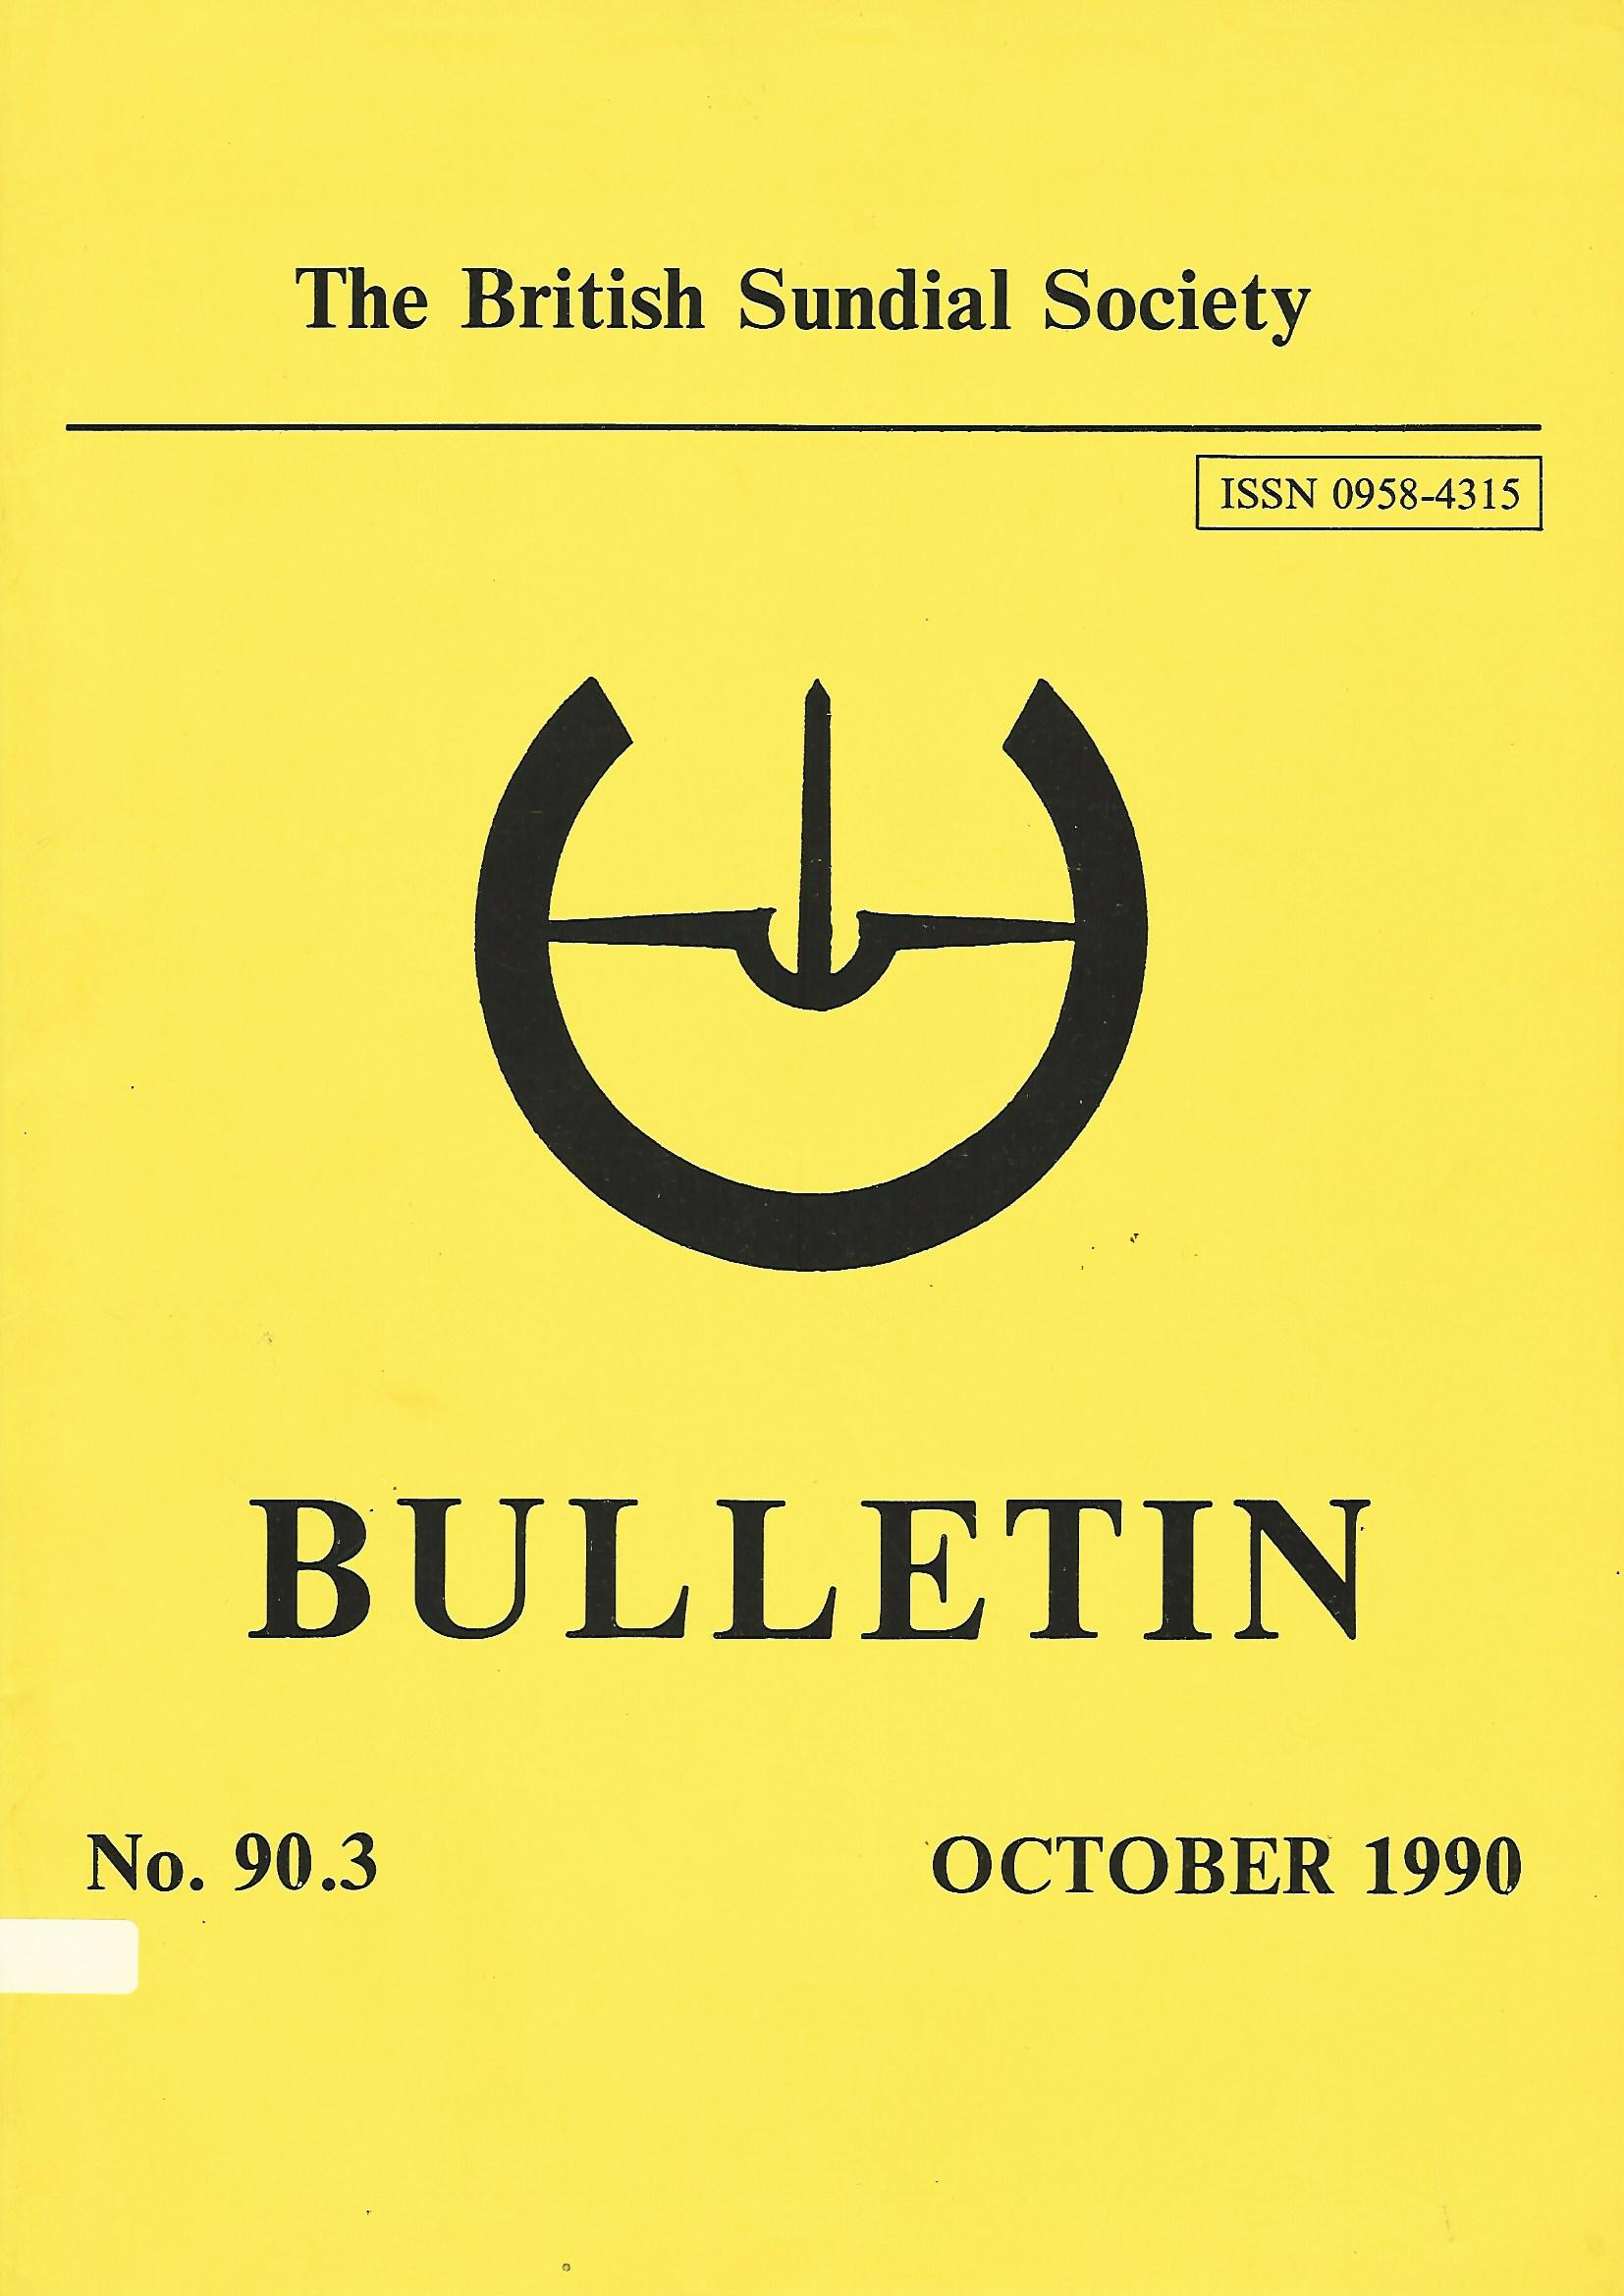 Image for The British Sundial Society Bulletin No 90.3 October 1990.